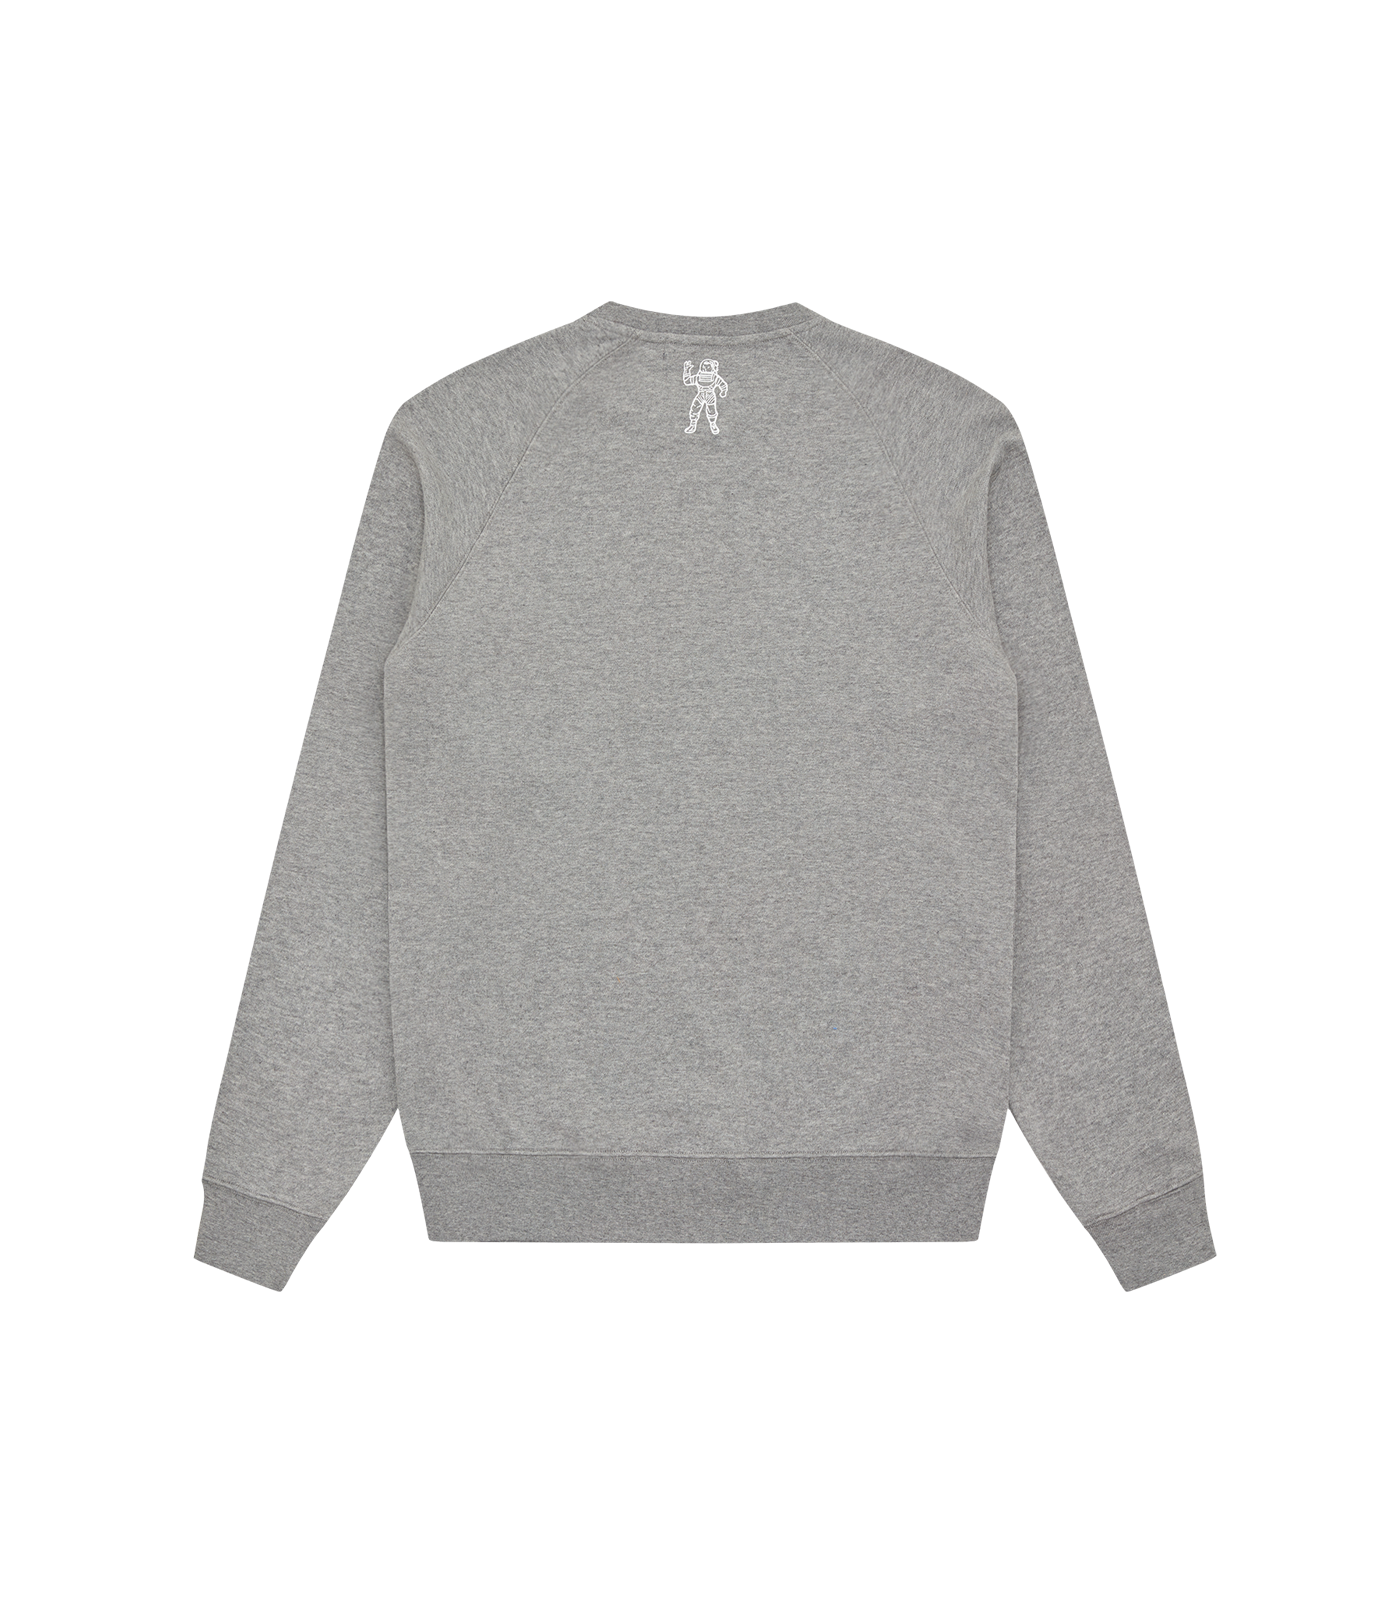 ARCH LOGO CREWNECK - HEATHER GREY